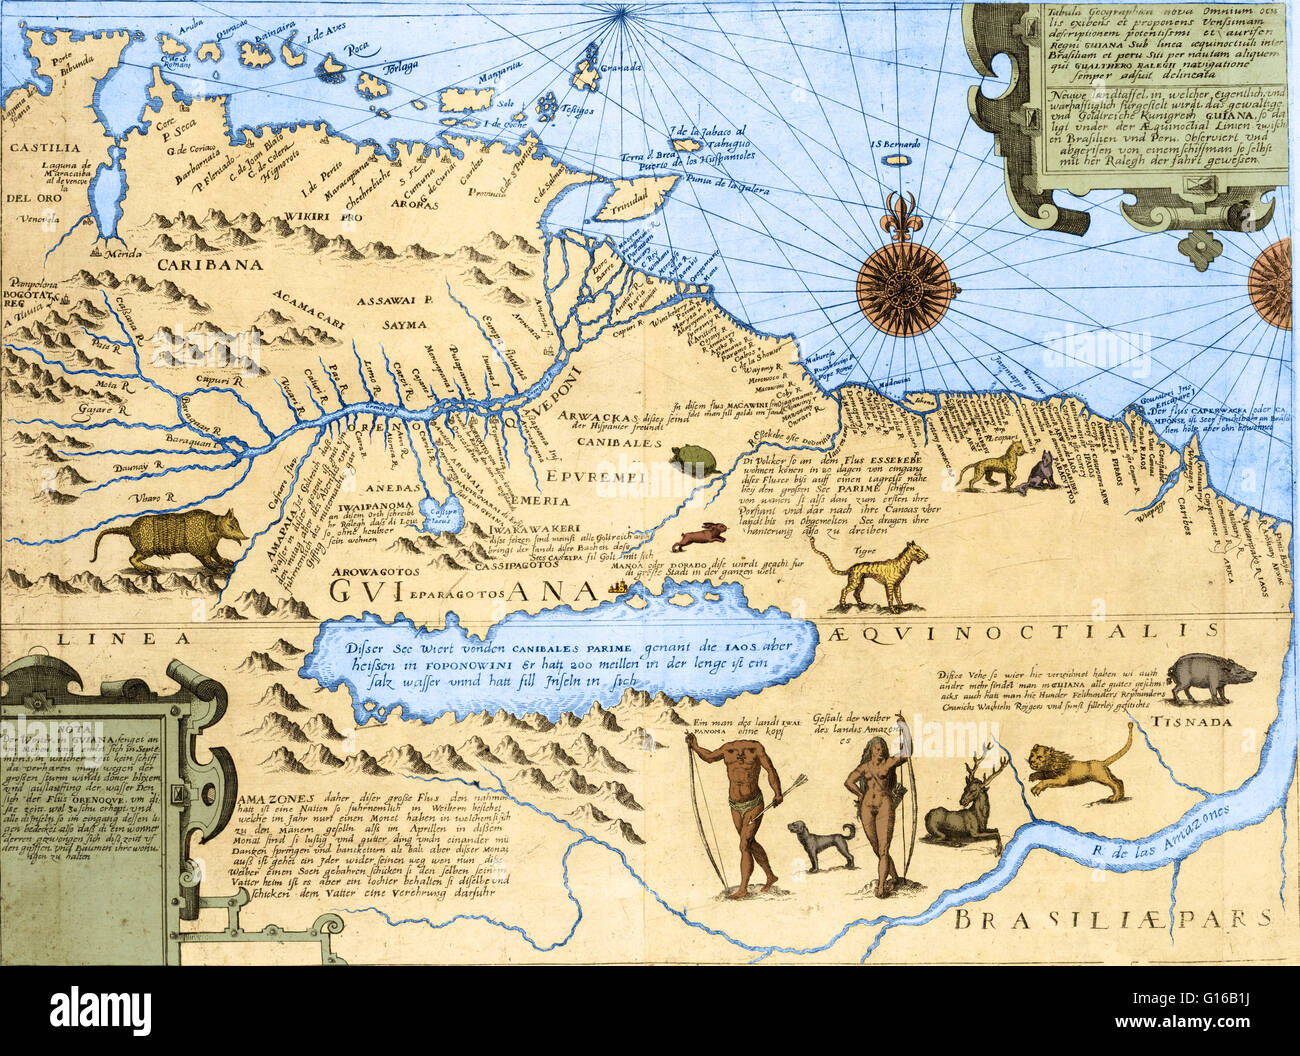 Map Of Brazil Amazon River High Resolution Stock Photography And Images Alamy